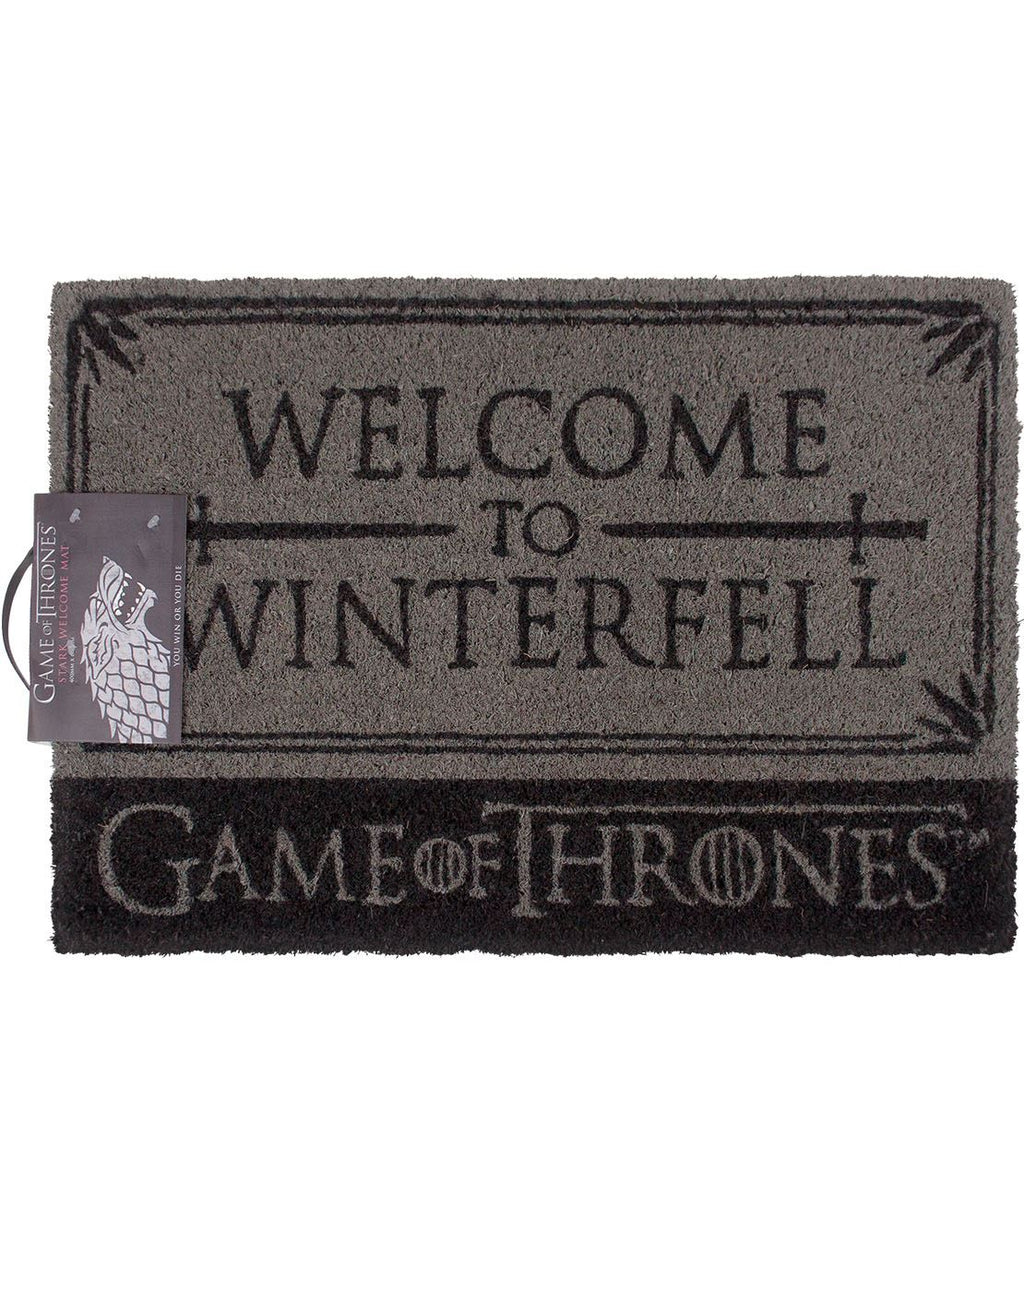 Game Of Thrones House Stark Welcome to Winterfell Door Mat